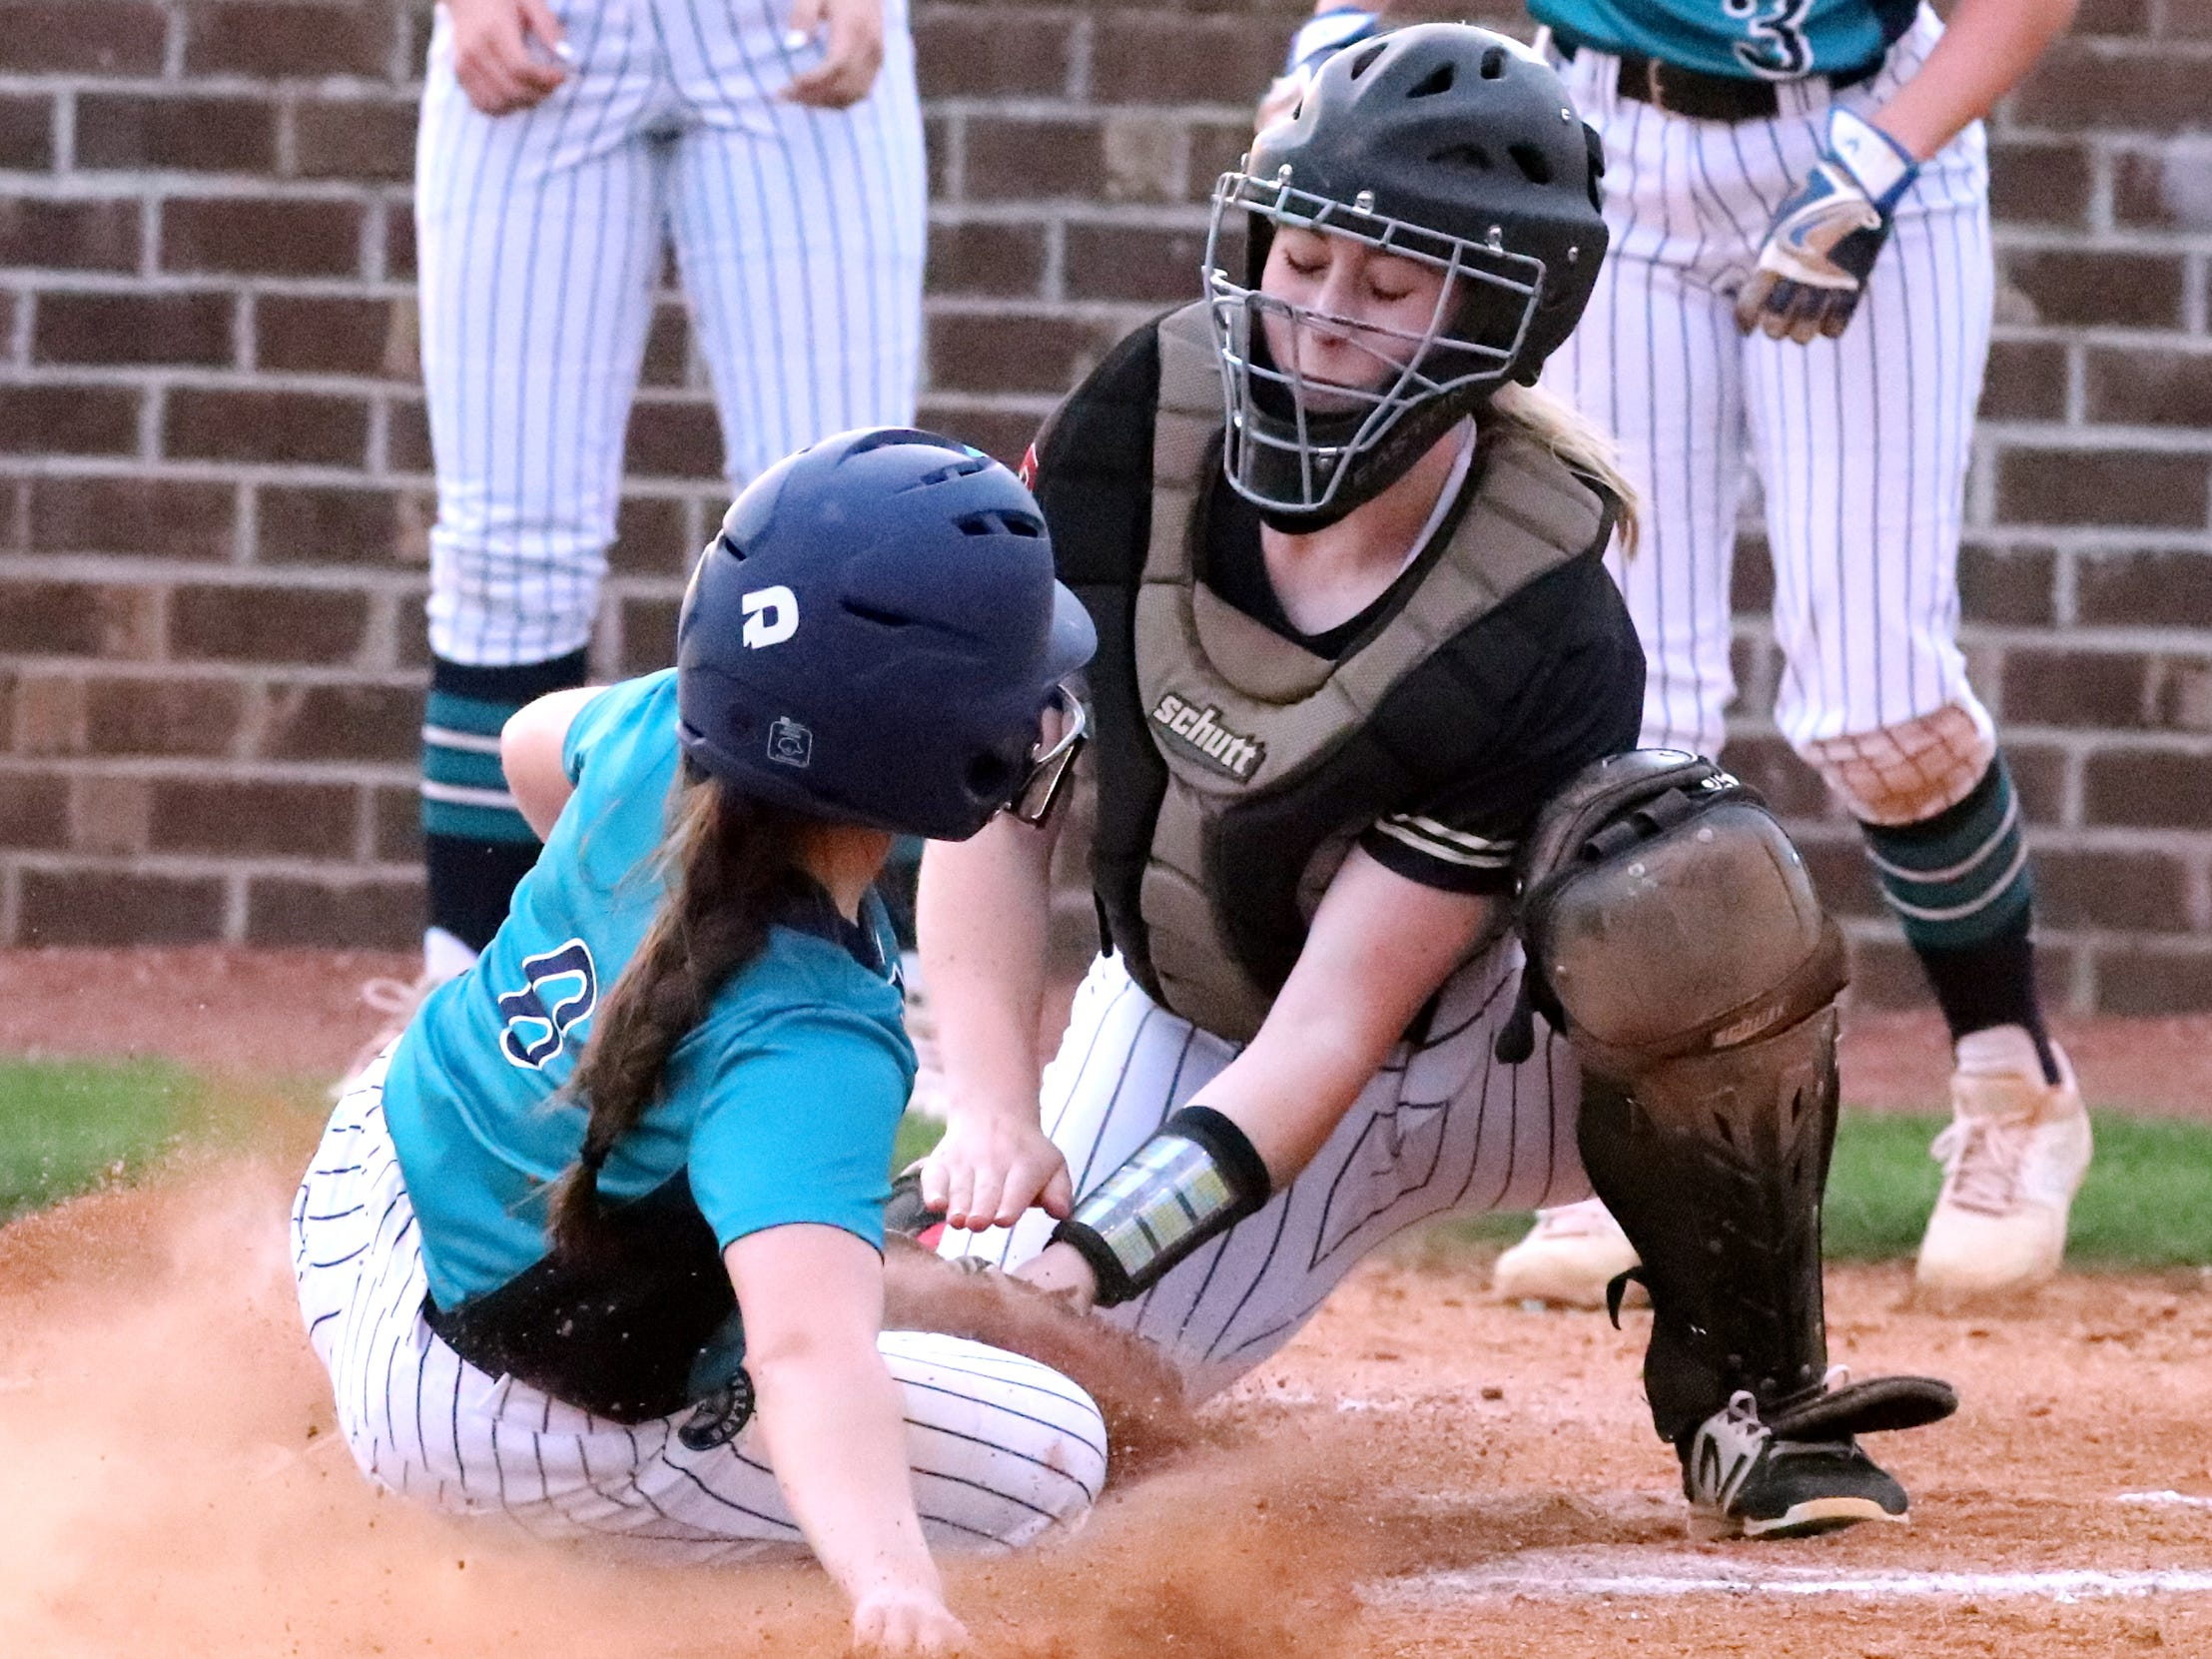 Riverdale's catcher Kendall Forsythe (21) tags out Siegel's Hope Keeeton (6) as she slides into home plate on Thursday April 11, 2019, at Riverdale.